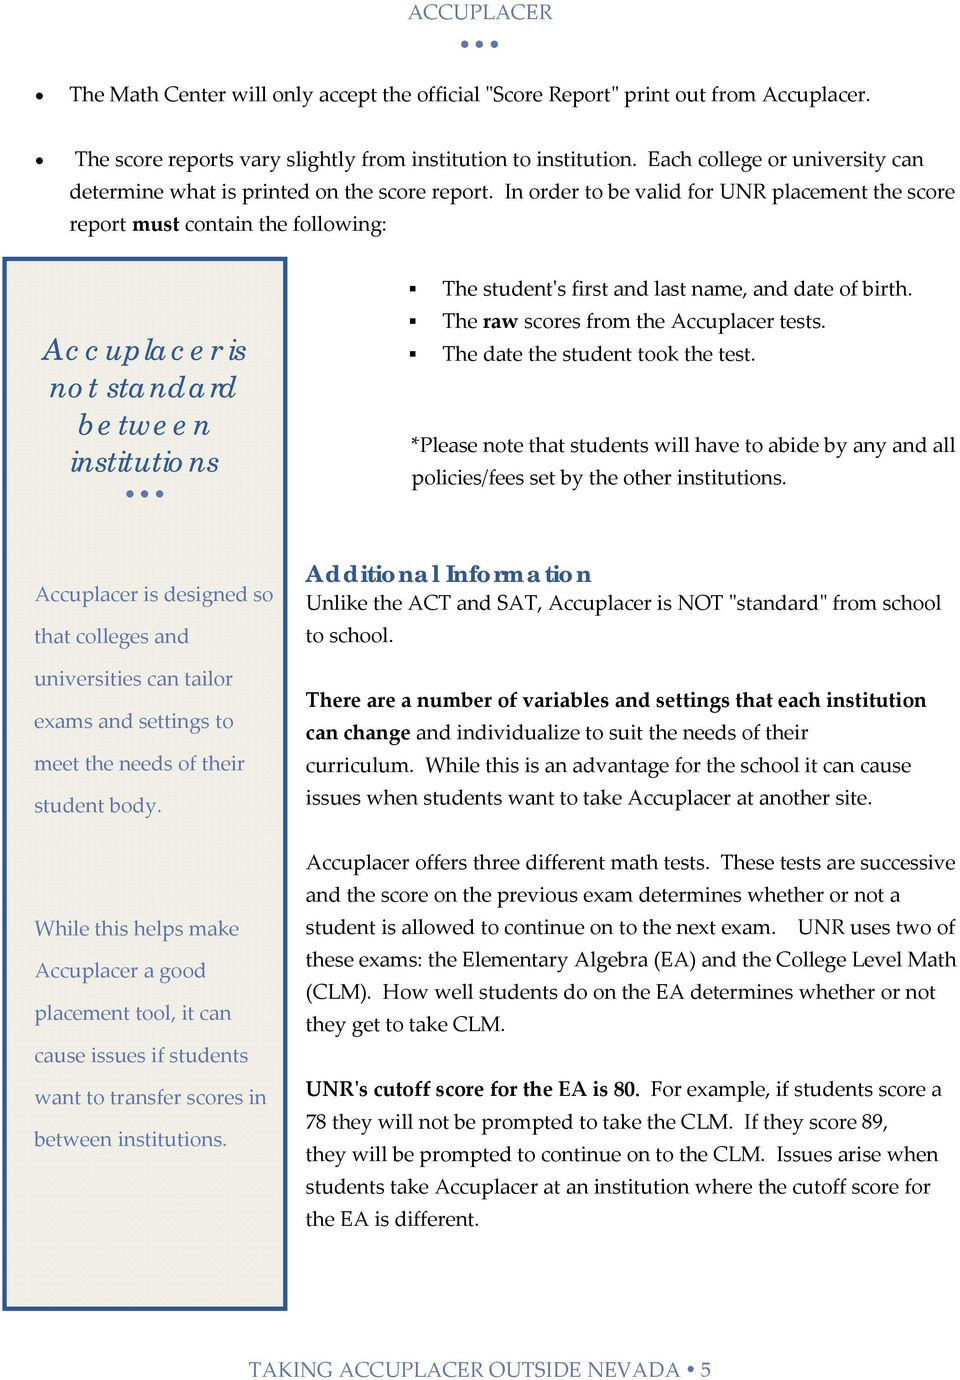 ACCUPLACER Information and Resource Guide for Incoming Students and